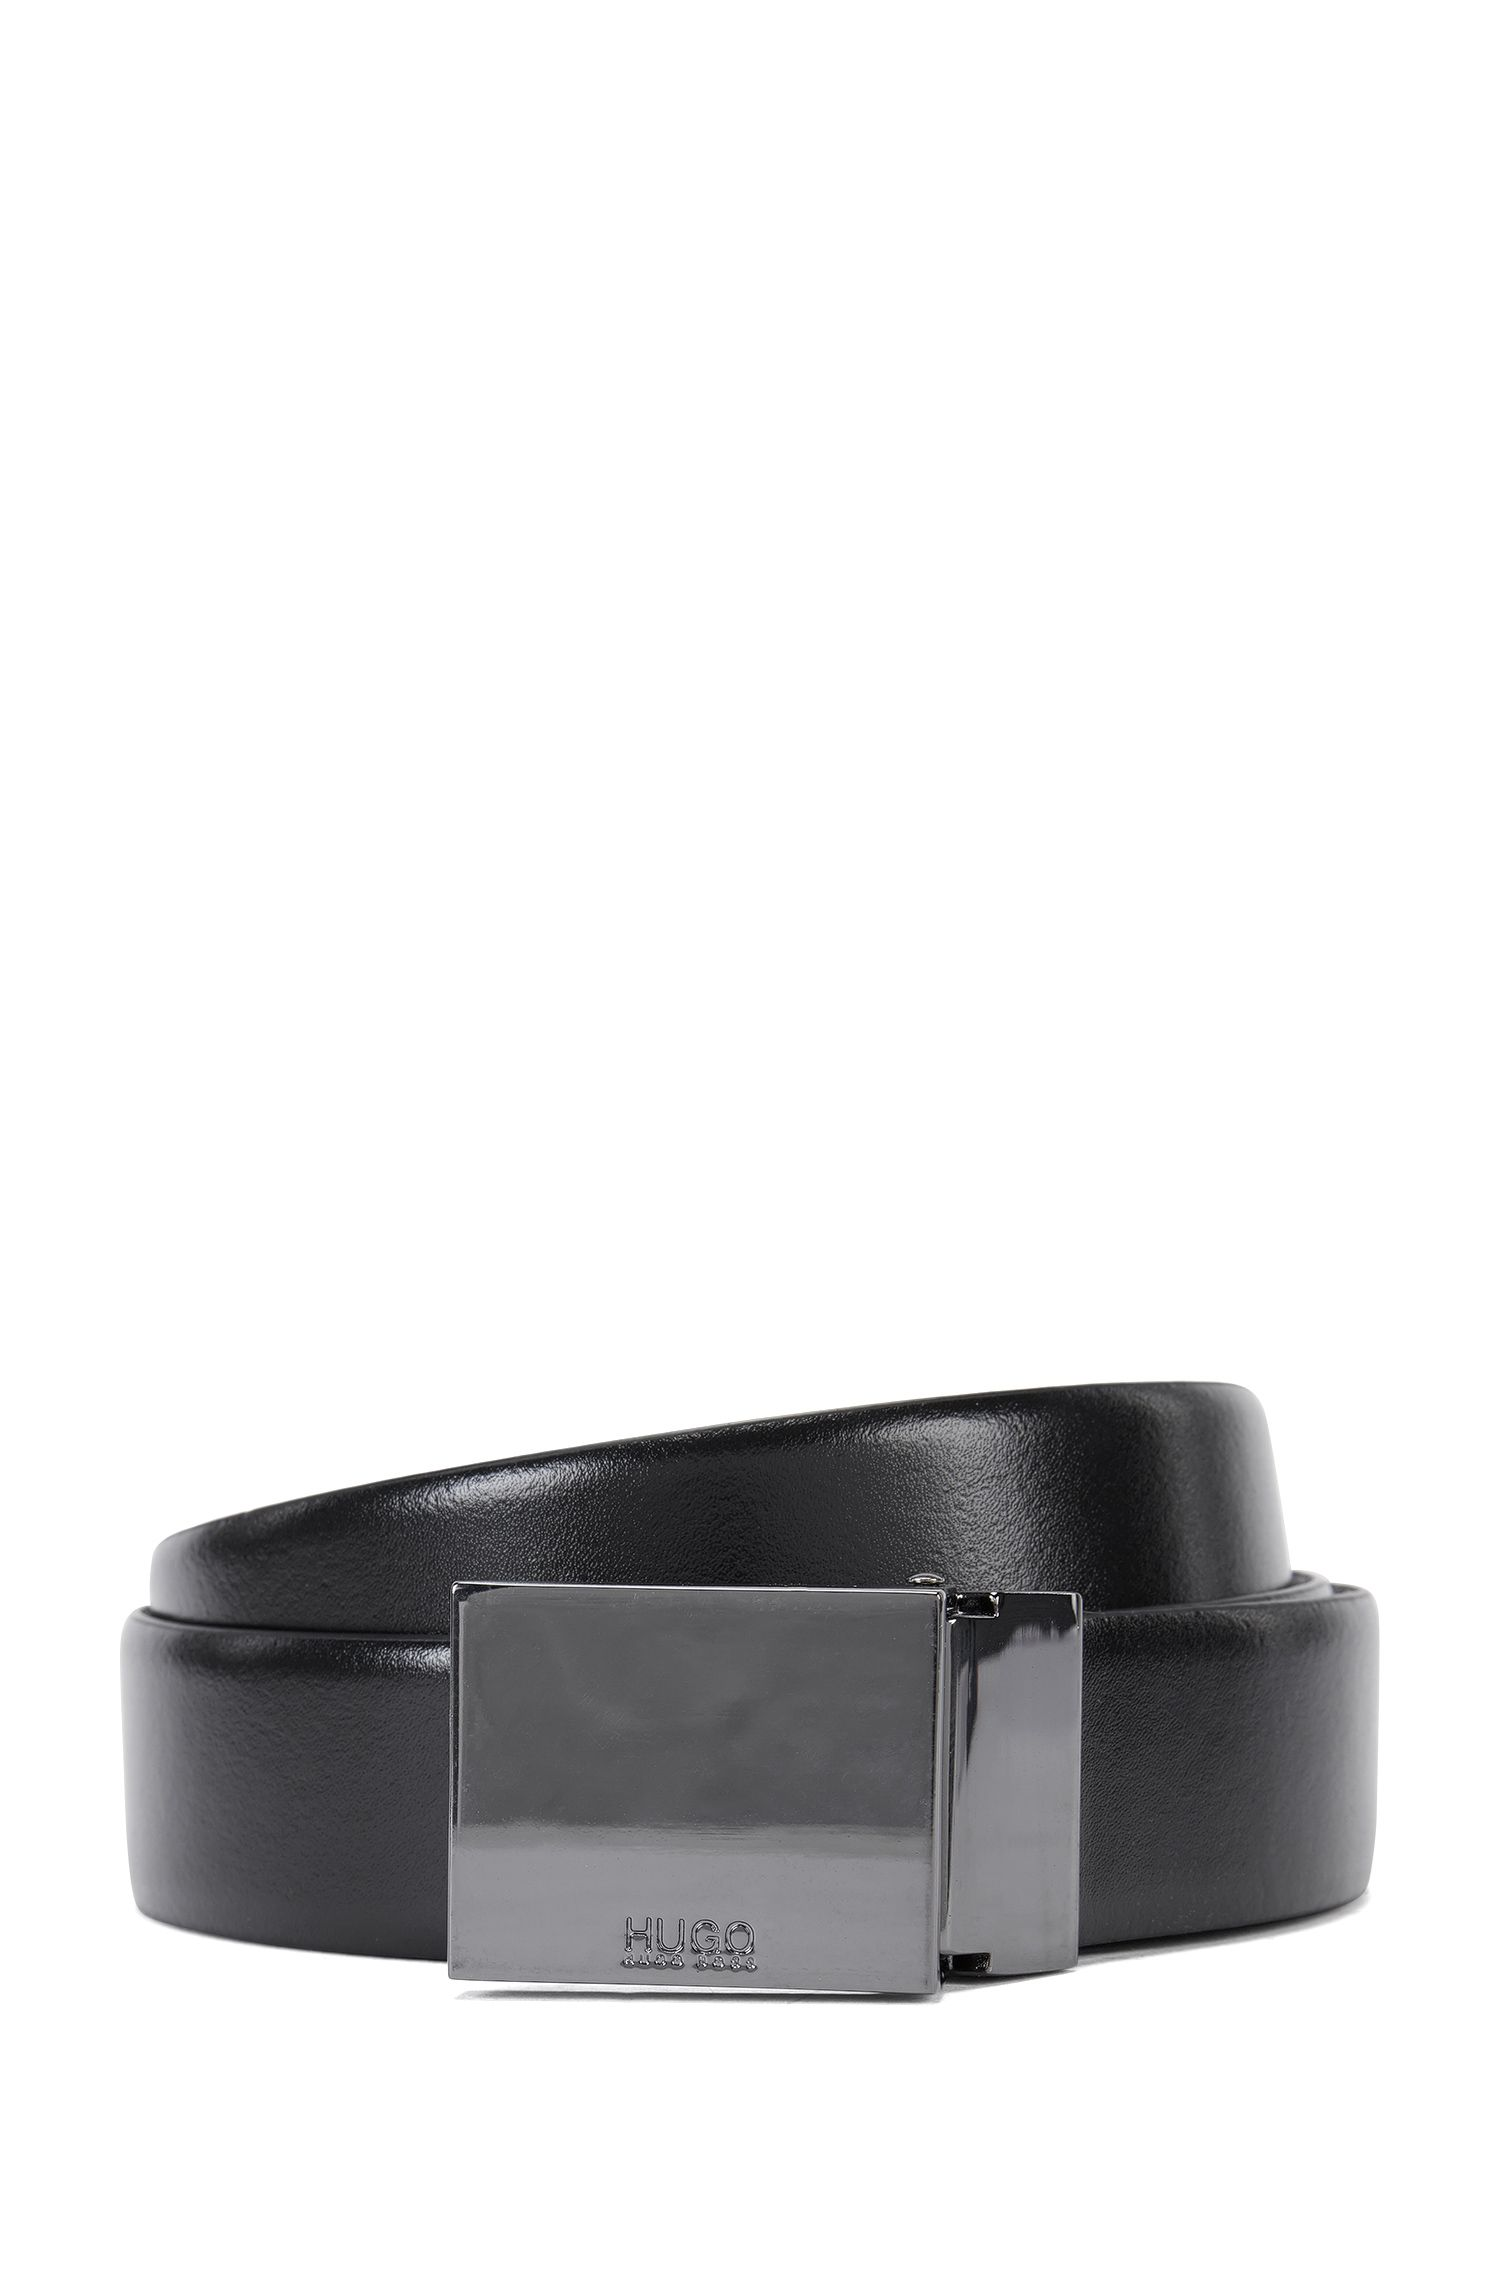 Reversible belt with double buckle